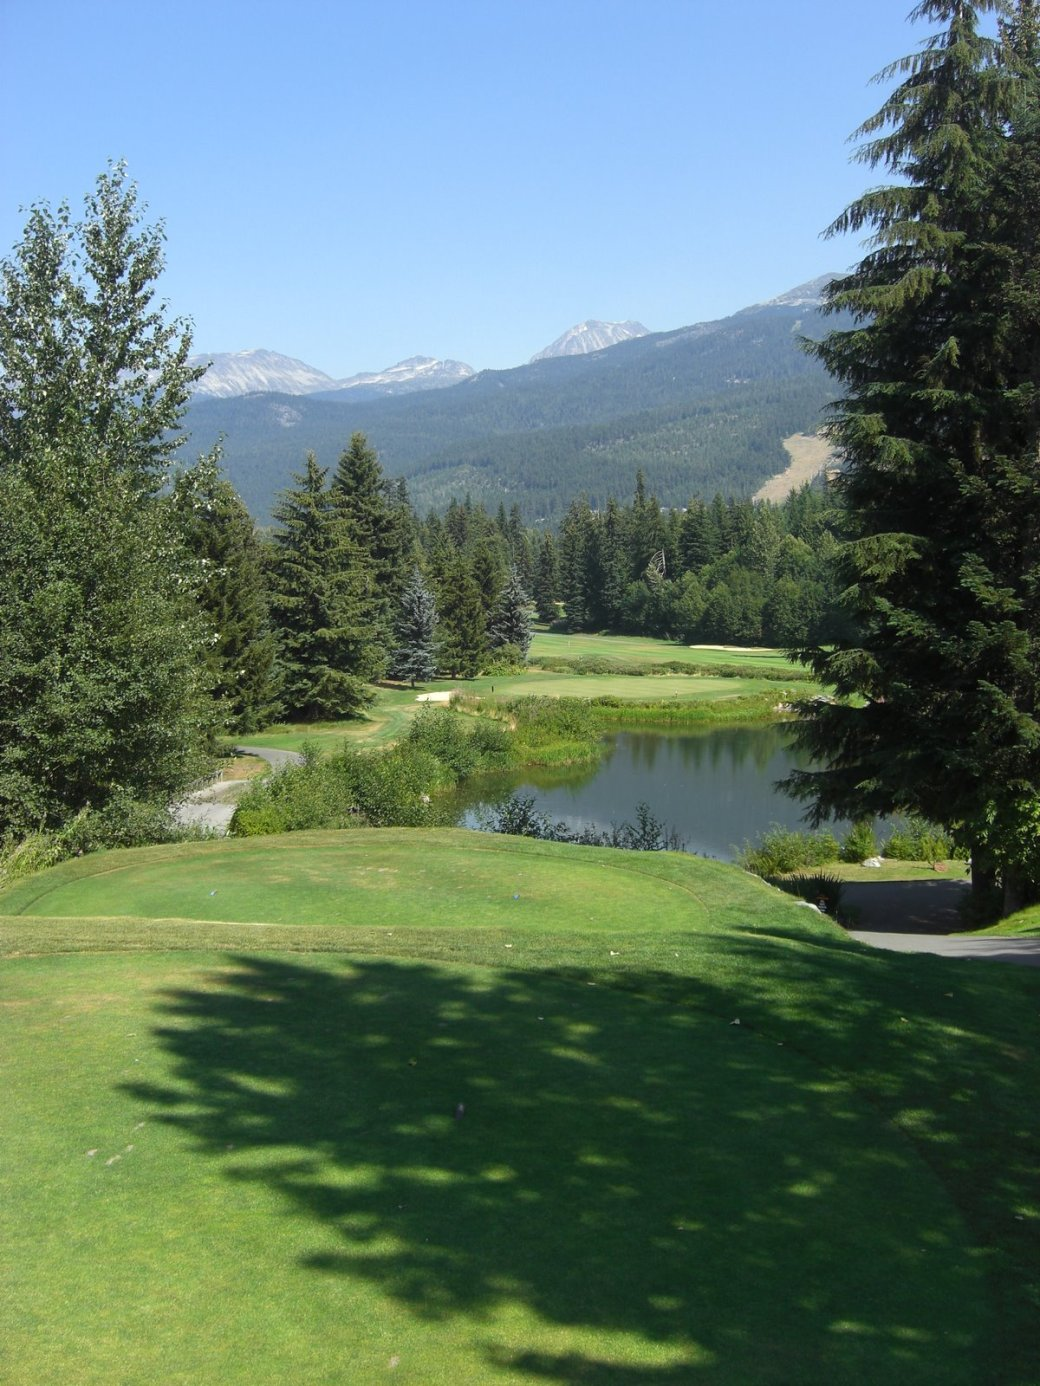 The Whistler Golf Course